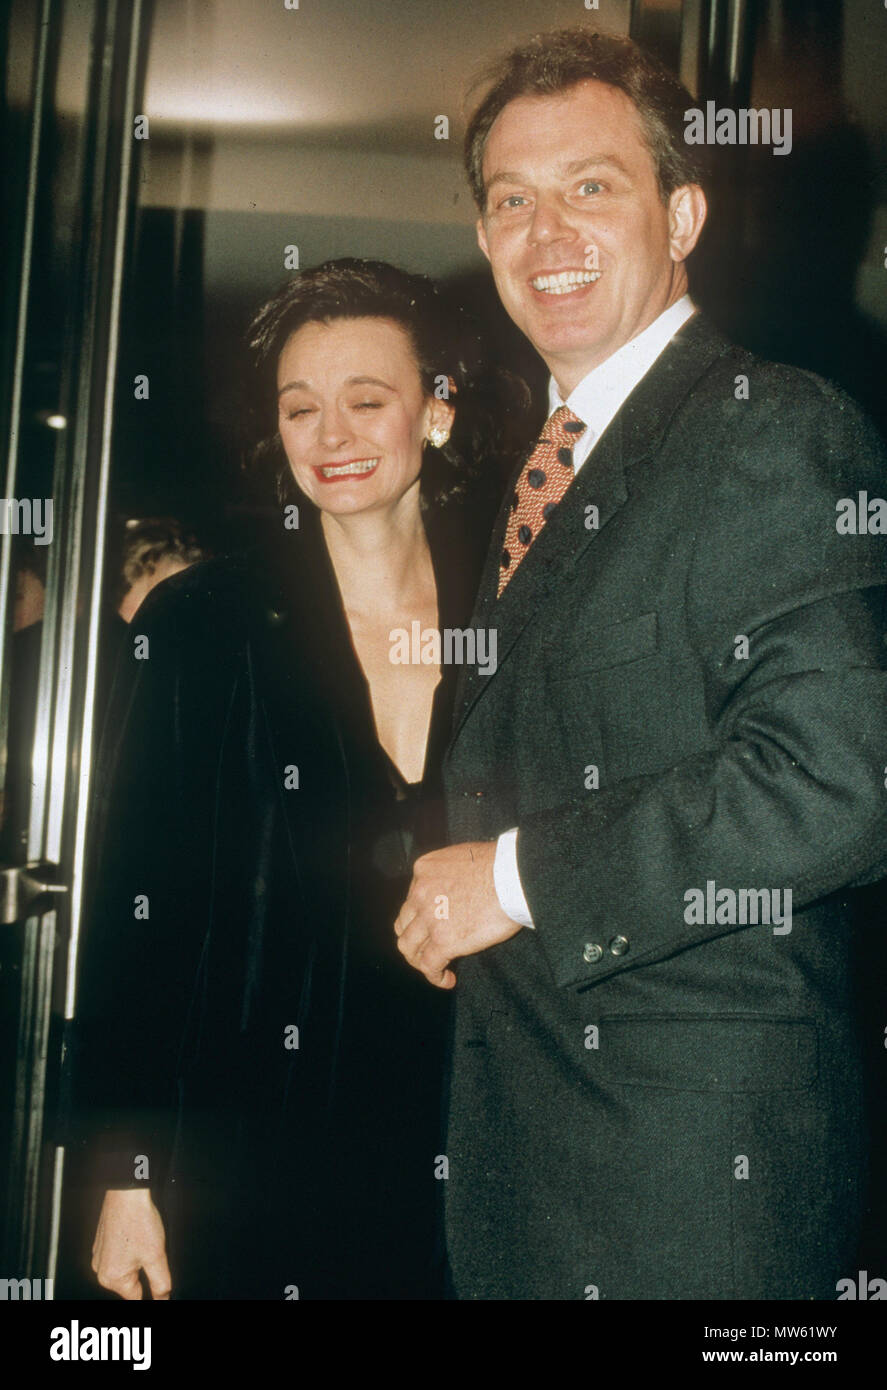 TONY BLAIR UK politician with his wife Cherie about 1995 - Stock Image